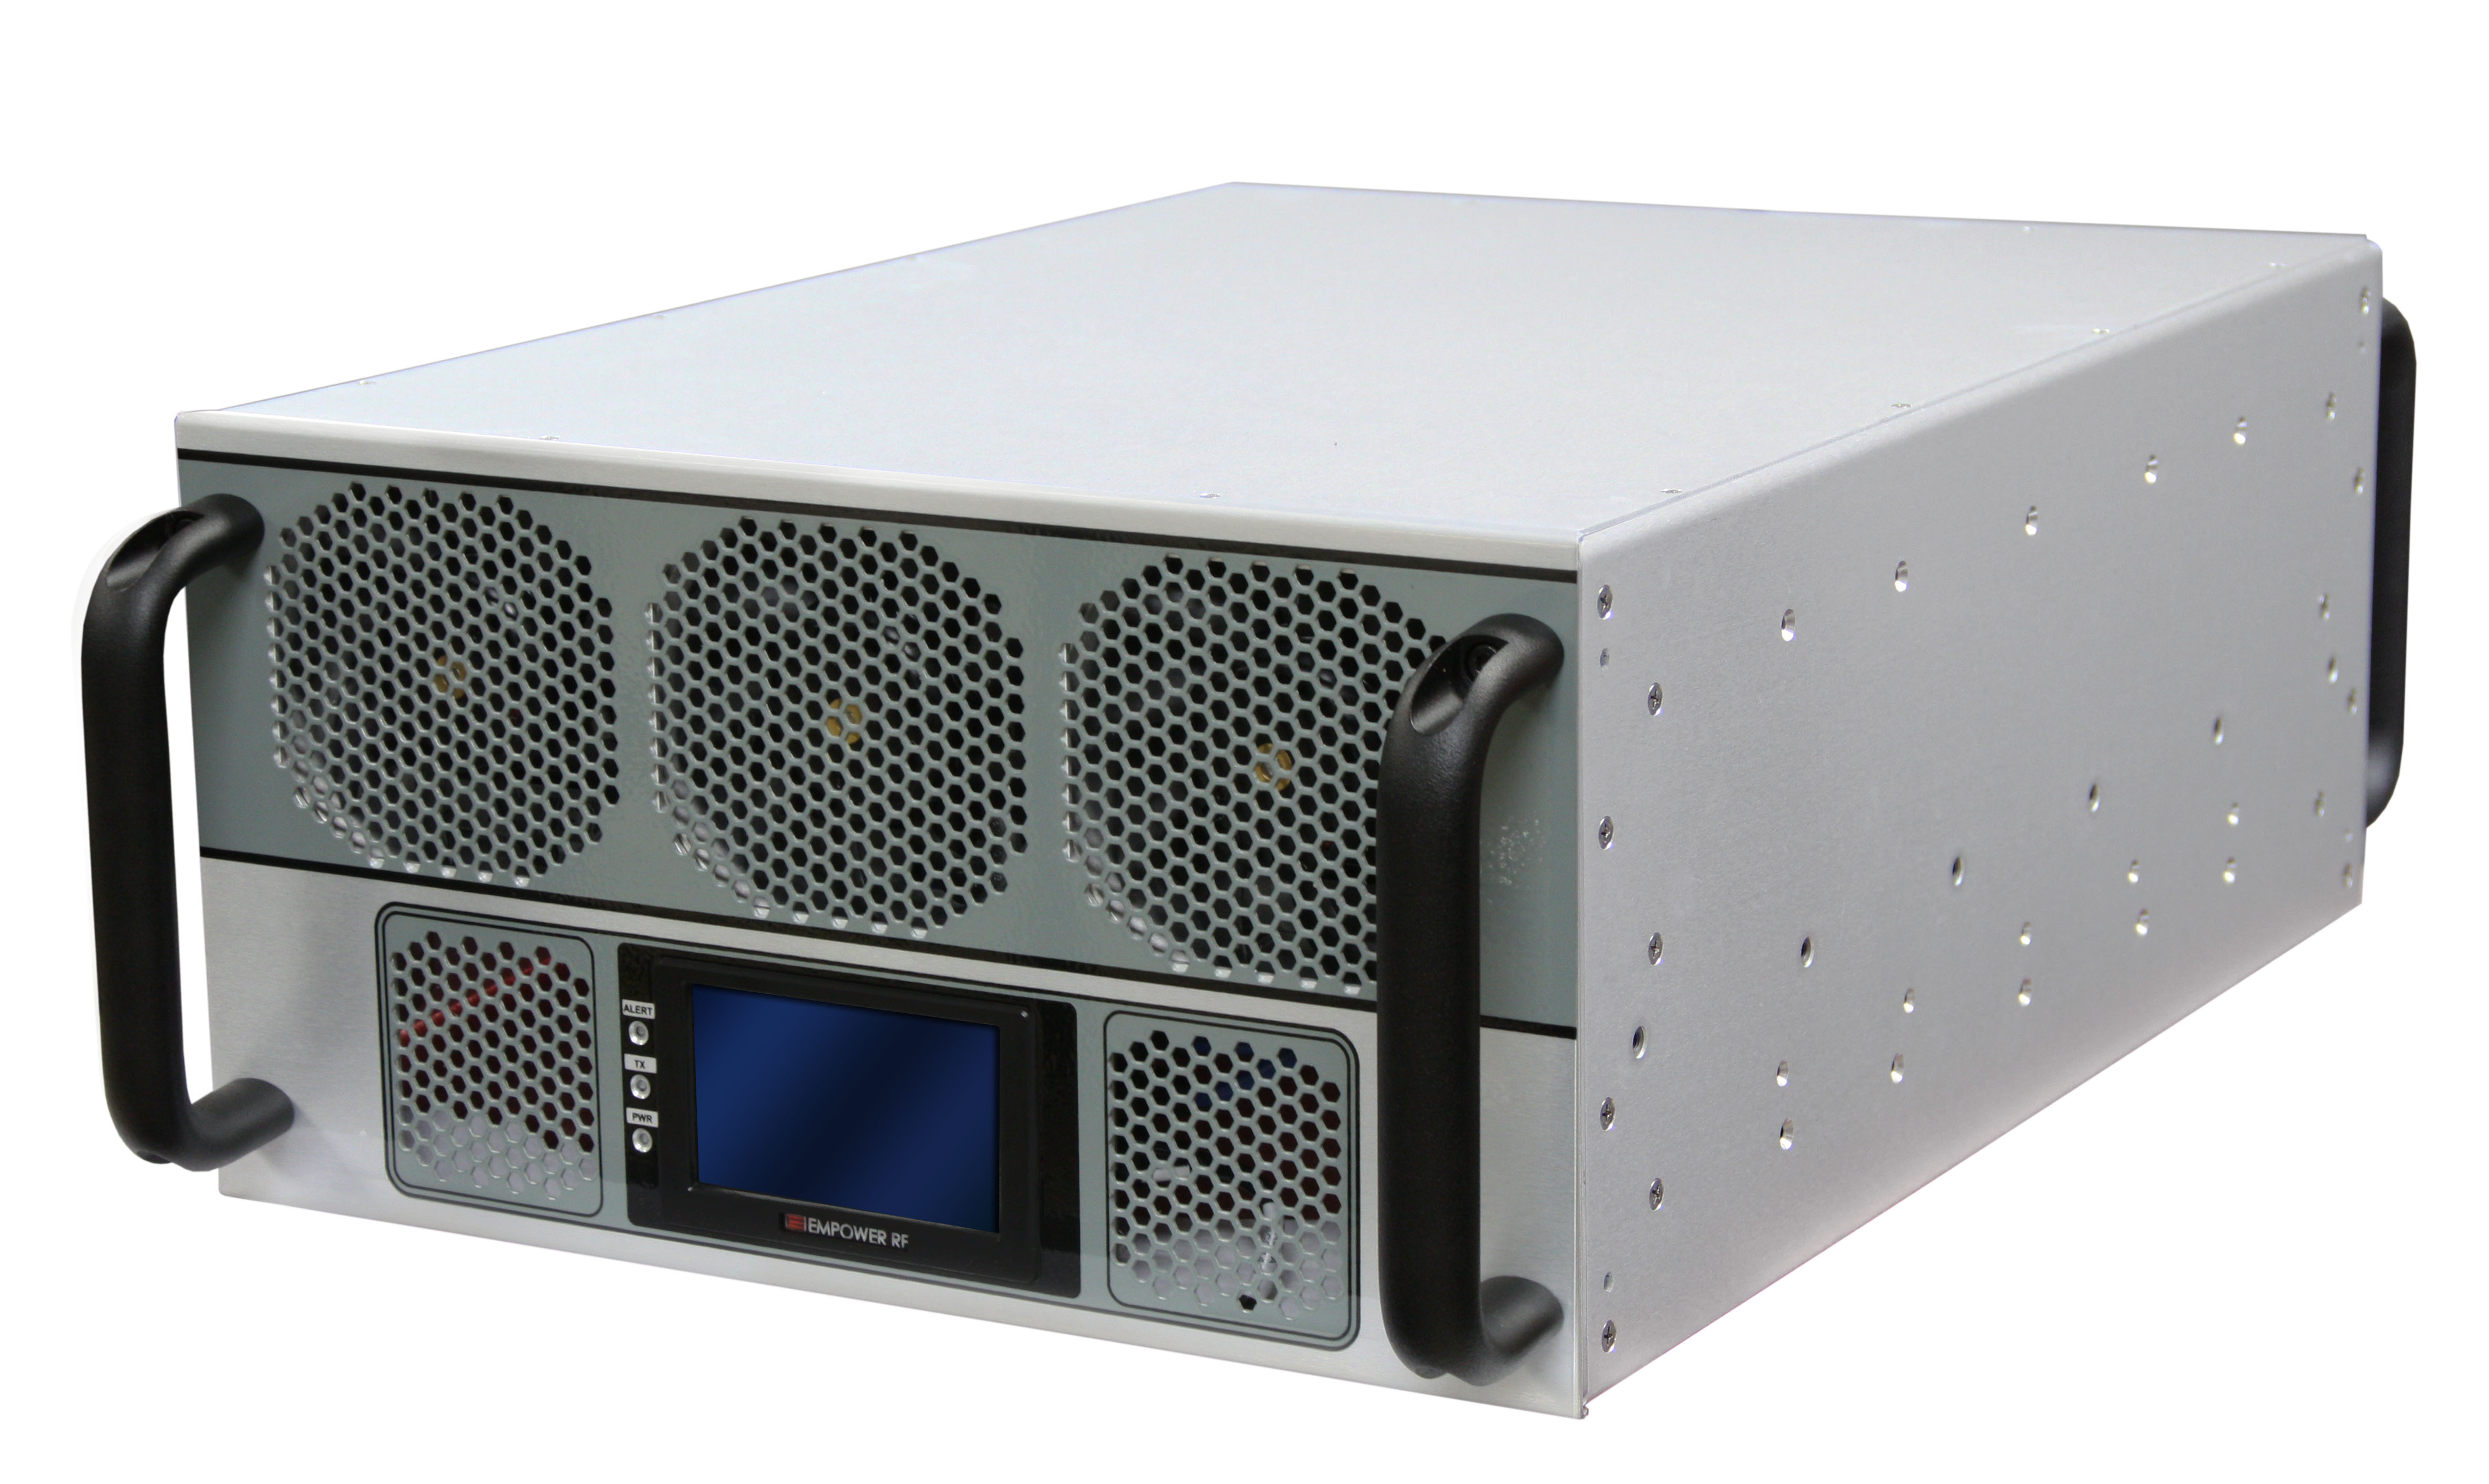 Rent Empower 2162 Solid State High Power Amplifier 20 MHz - 1000 MHz, 1000 W